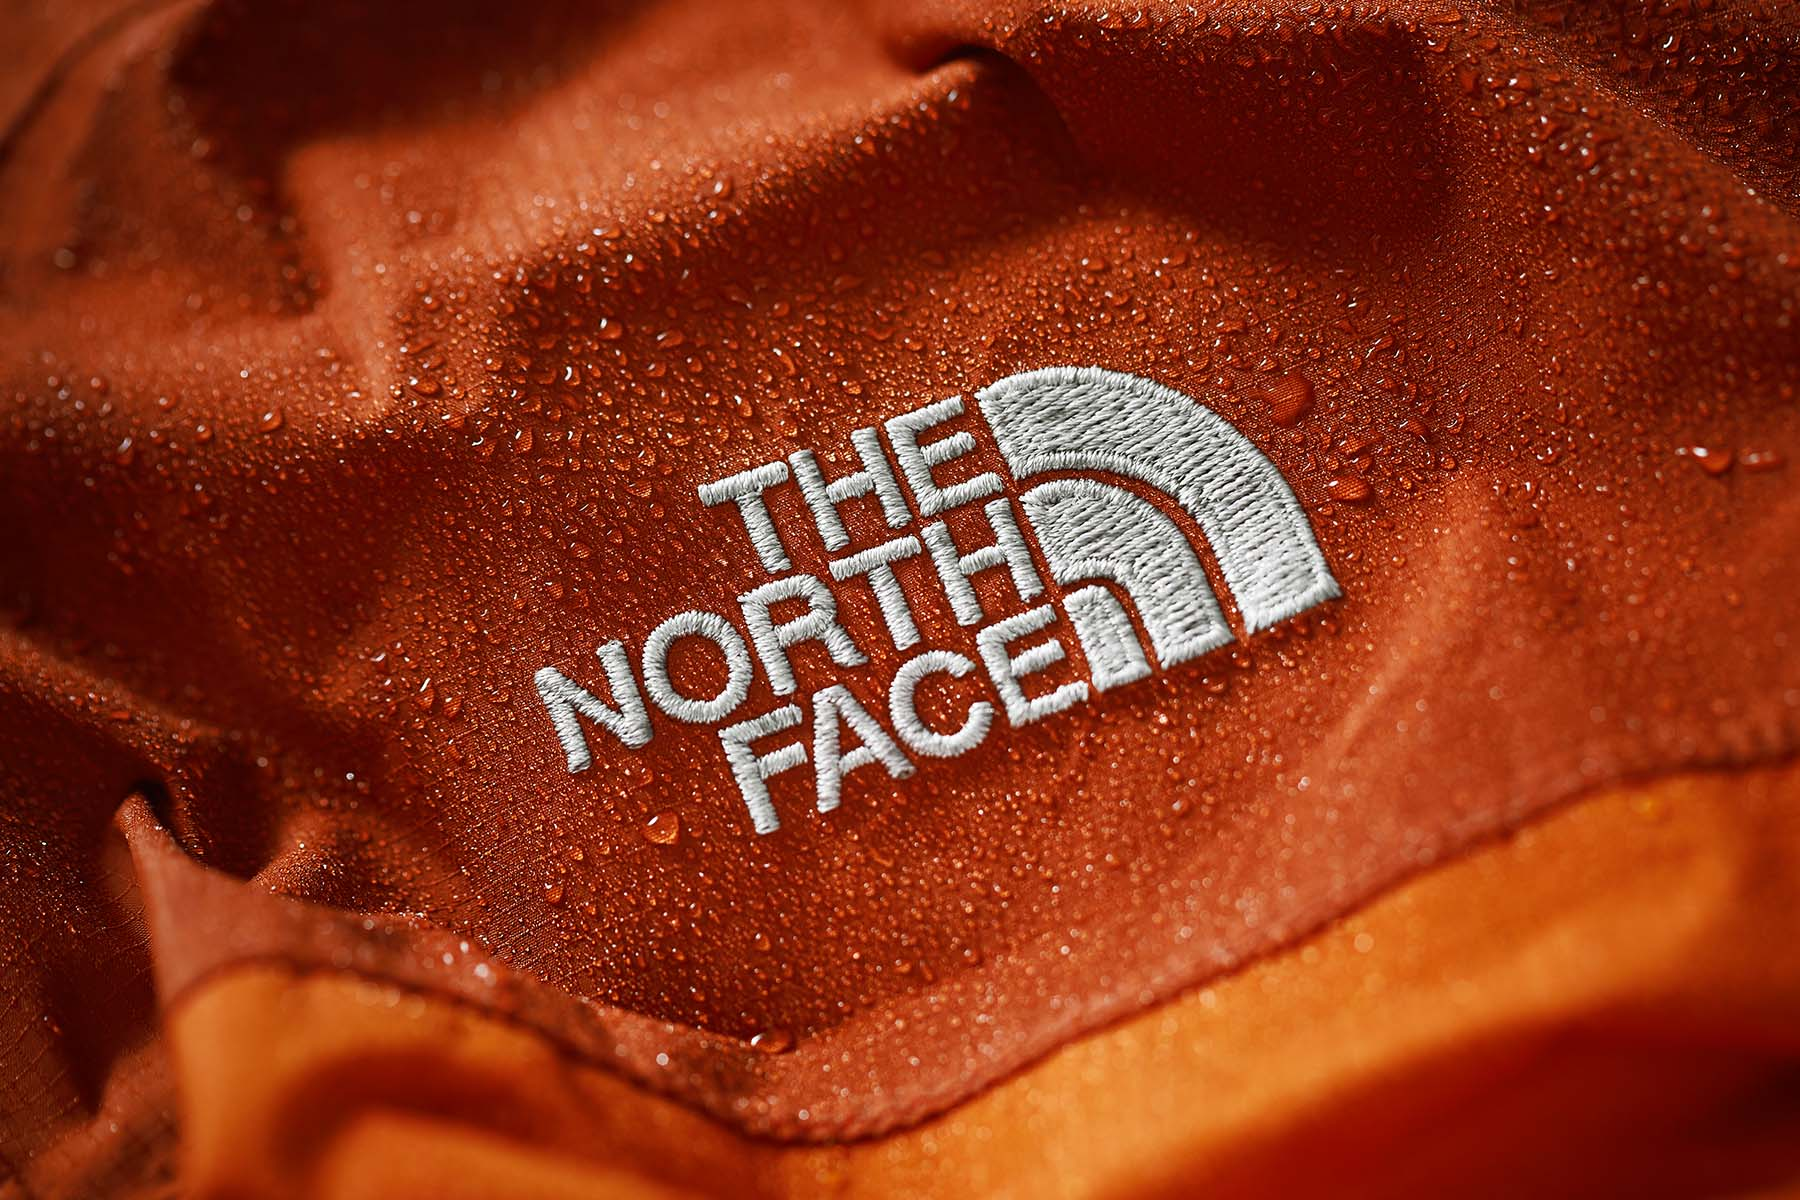 TheNorthFace-orange-jacket-wet-gabetoth